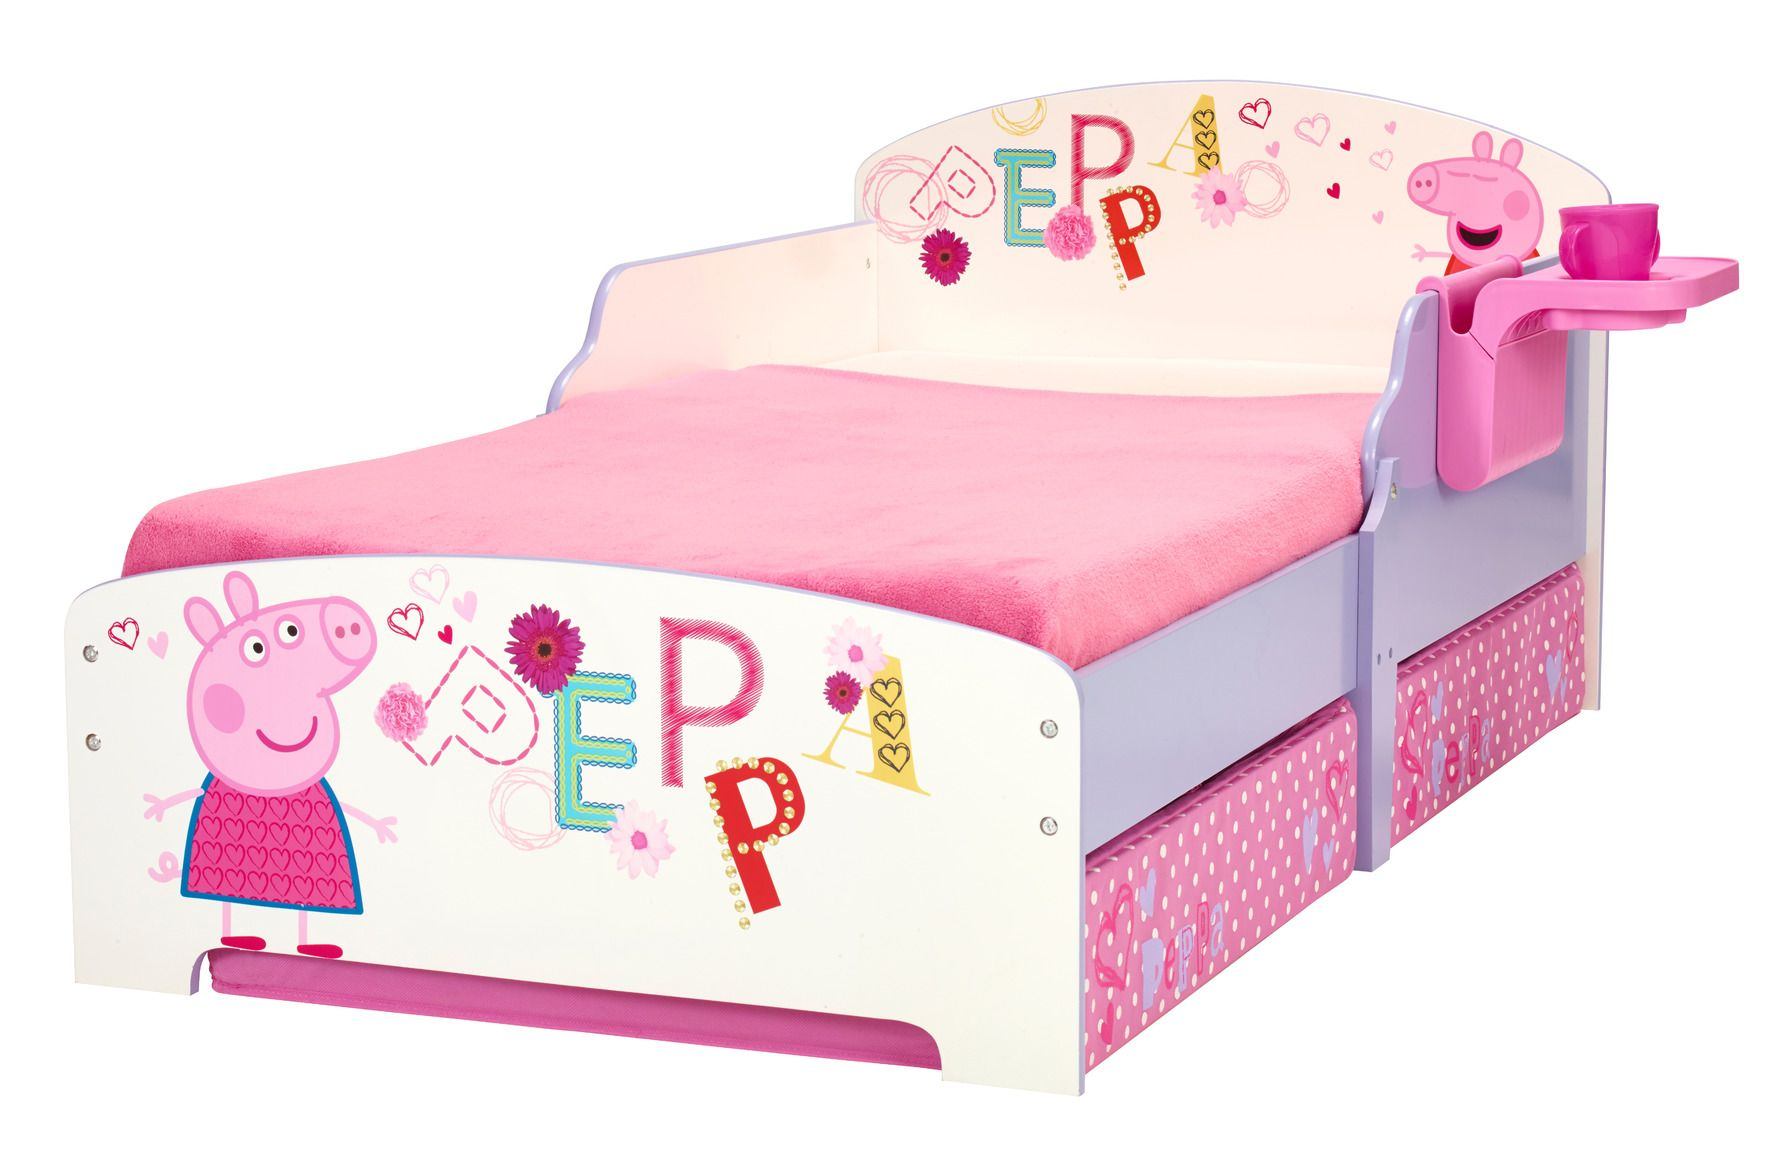 Sleep tight and snuffle down with the Peppa Pig Storytime